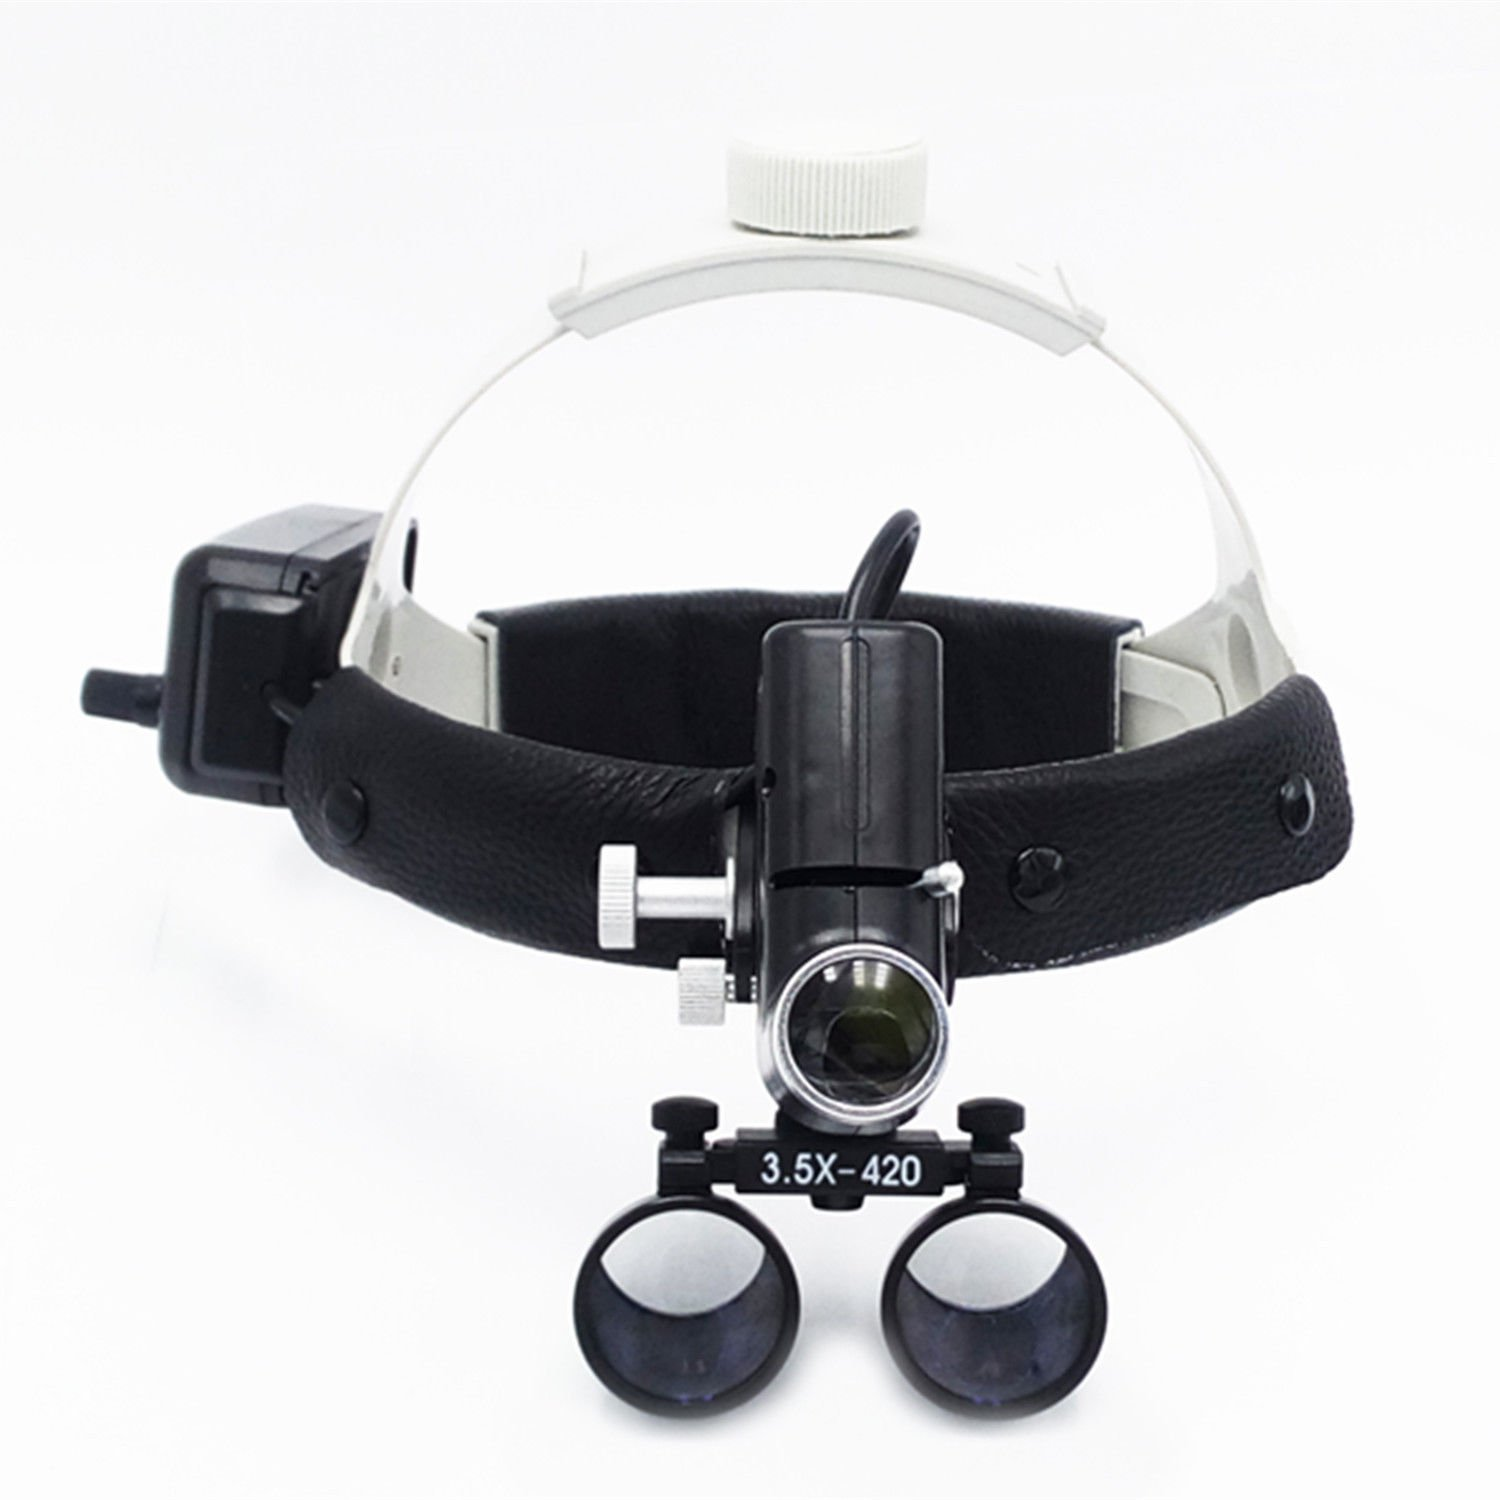 EAST Dental Surgical Medical 3.5X420mm Headband Loupe with LED Headlight DY-106( Black) by EAST DENTAL (Image #2)